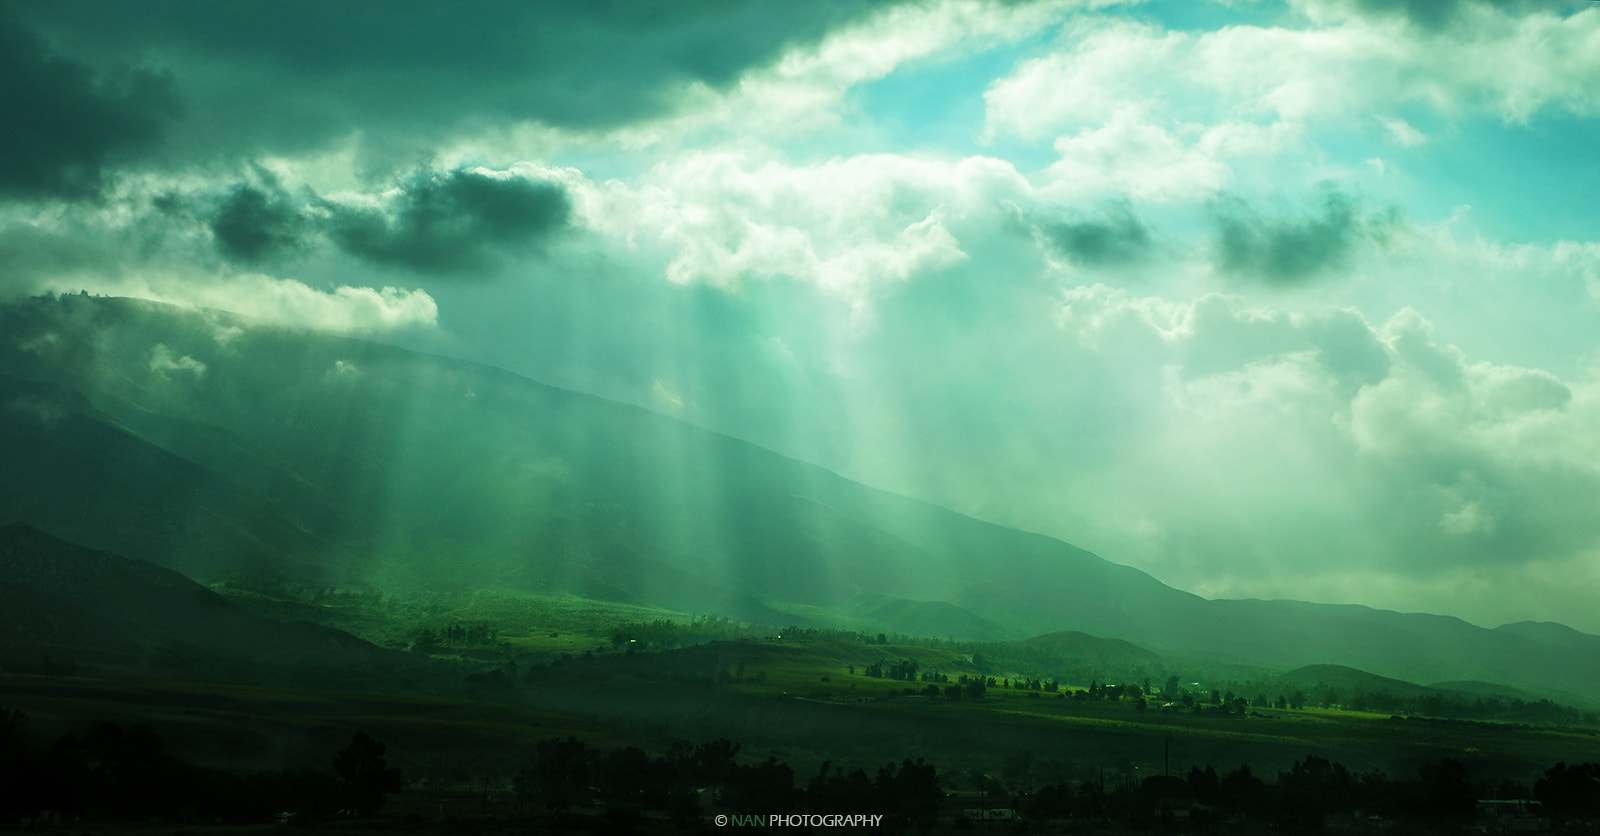 Photograph morning, countryside! by Nan Zhong on 500px